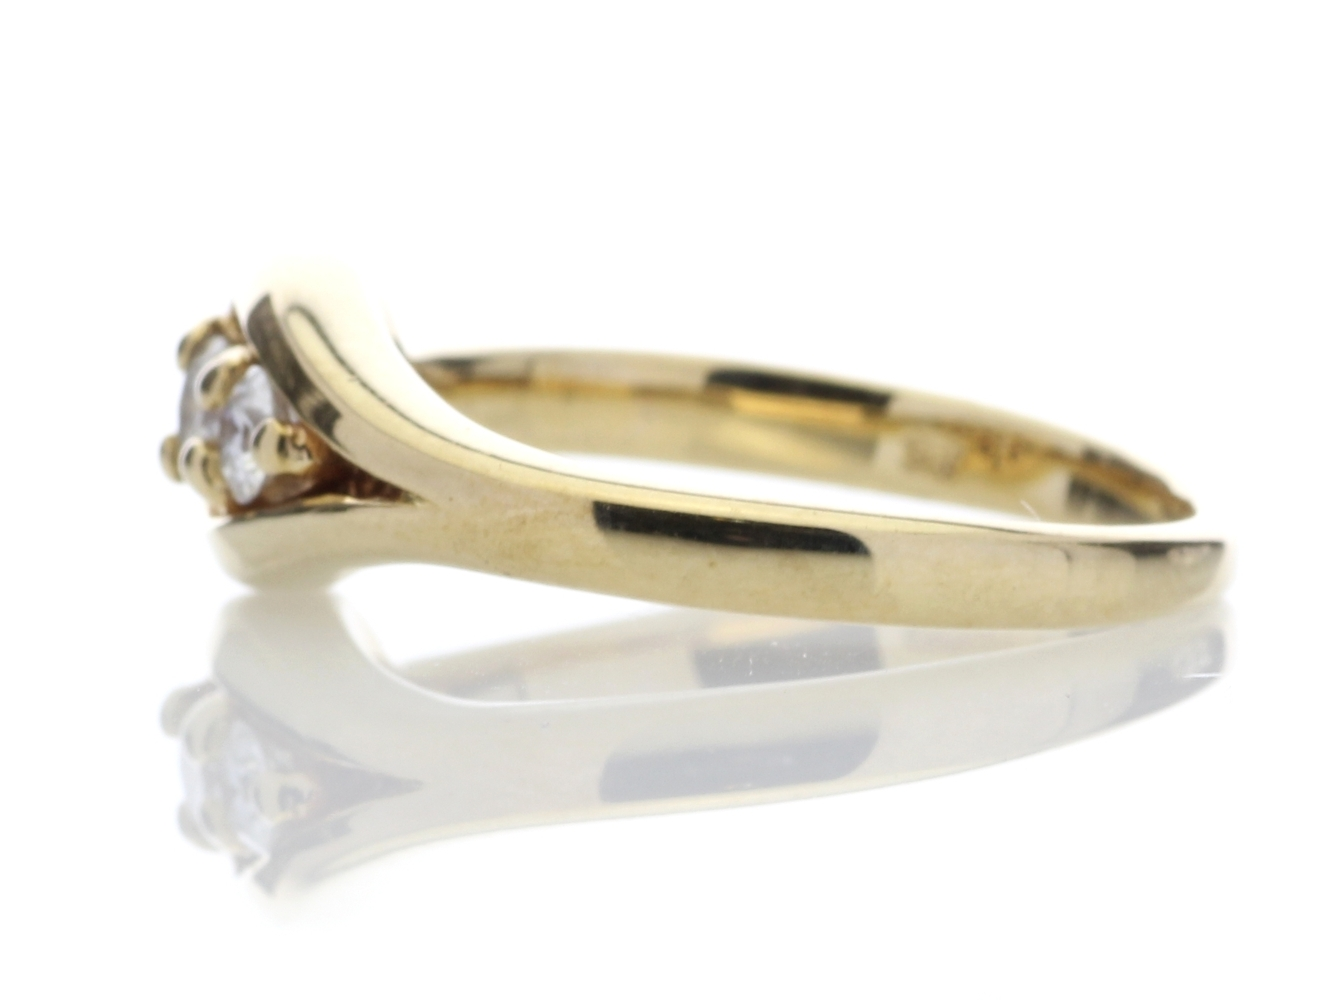 9ct Two Stone Claw Set Diamond Ring 0.18 Carats - Image 3 of 4